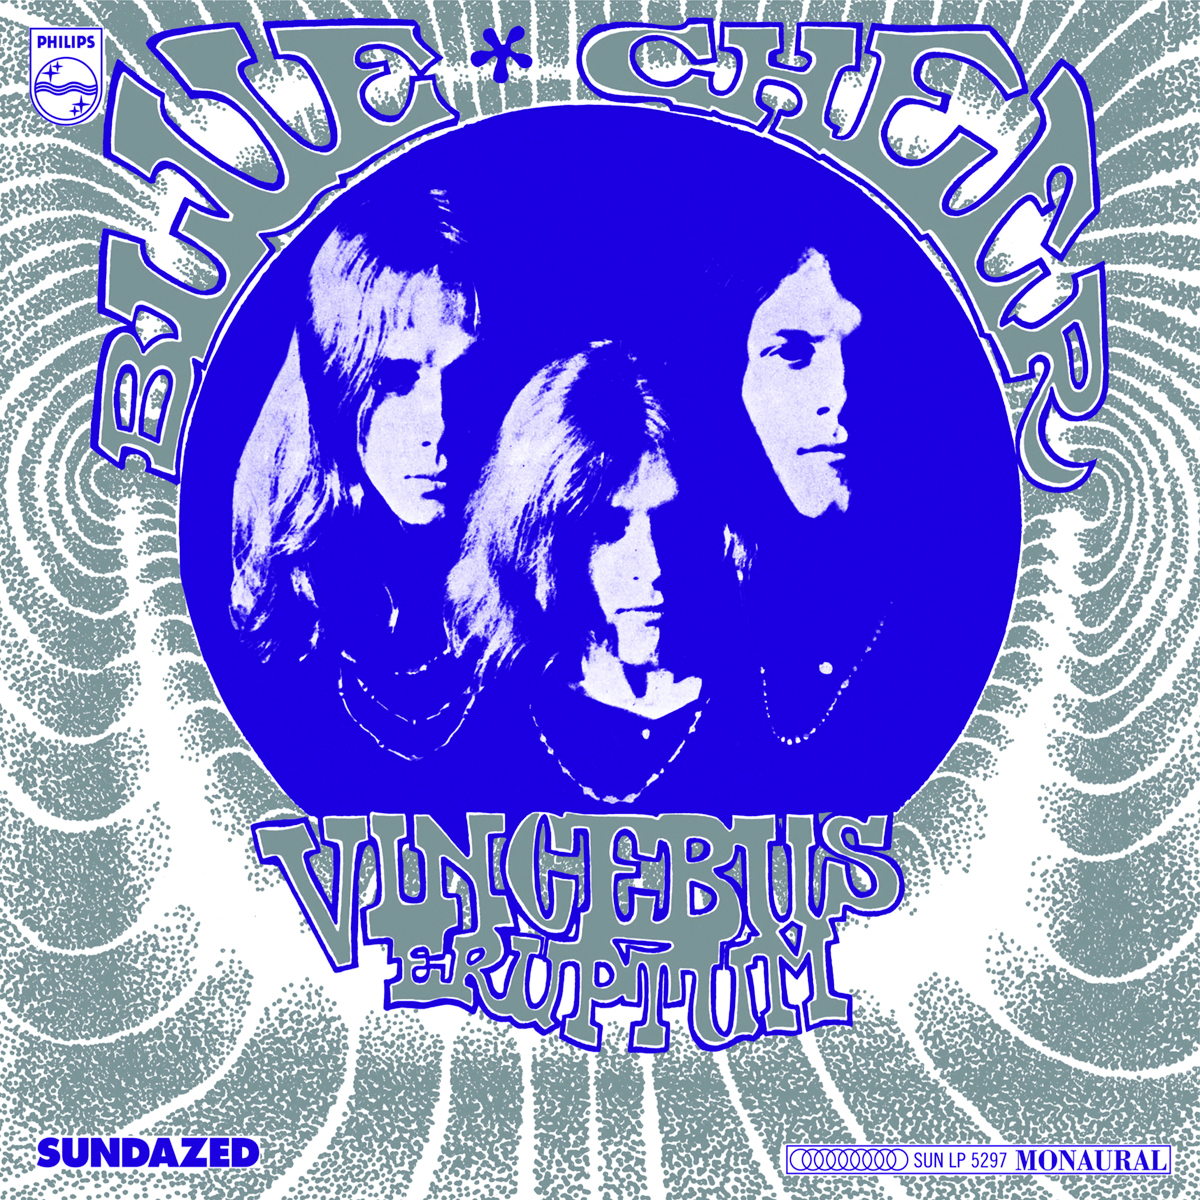 Blue Cheer - Vincebus Eruptum MONO LIMITED EDITION CD